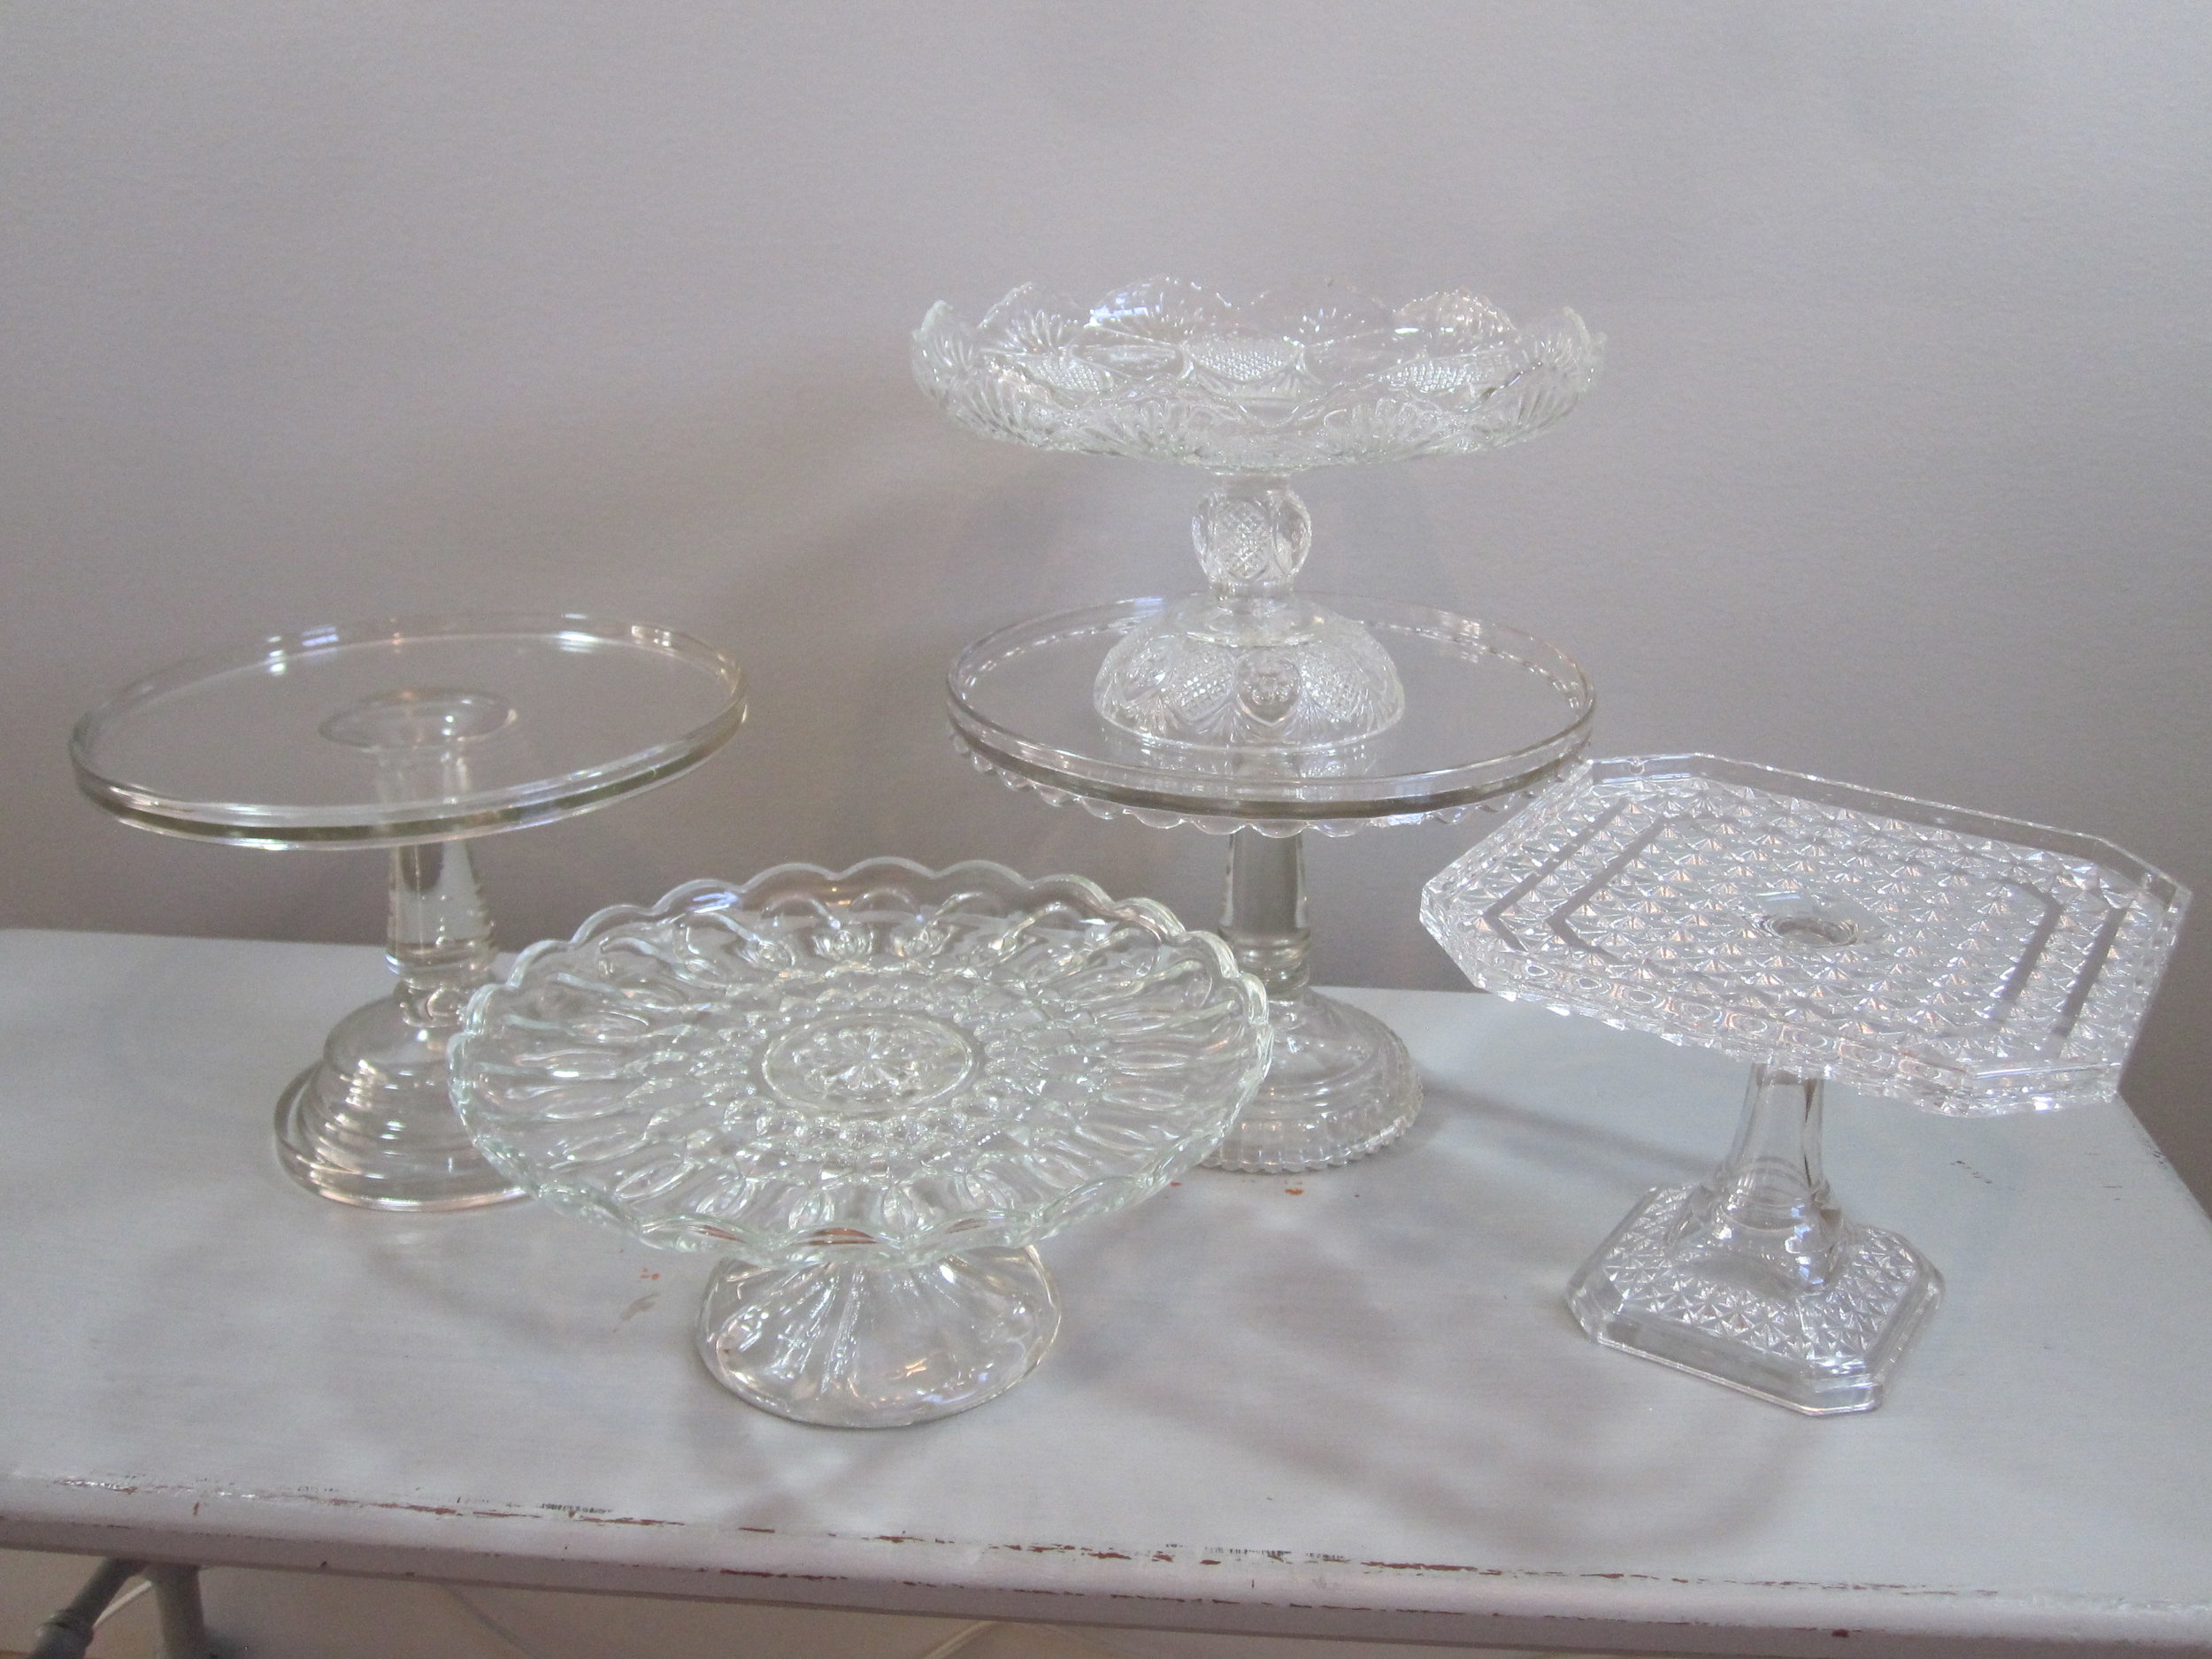 Pedestal Cake Plates - Description ~ assorted shapes, height & sizes; great to stack and display cupcakes, cookies & moreQuantity ~ 20Rental Price ~ $8